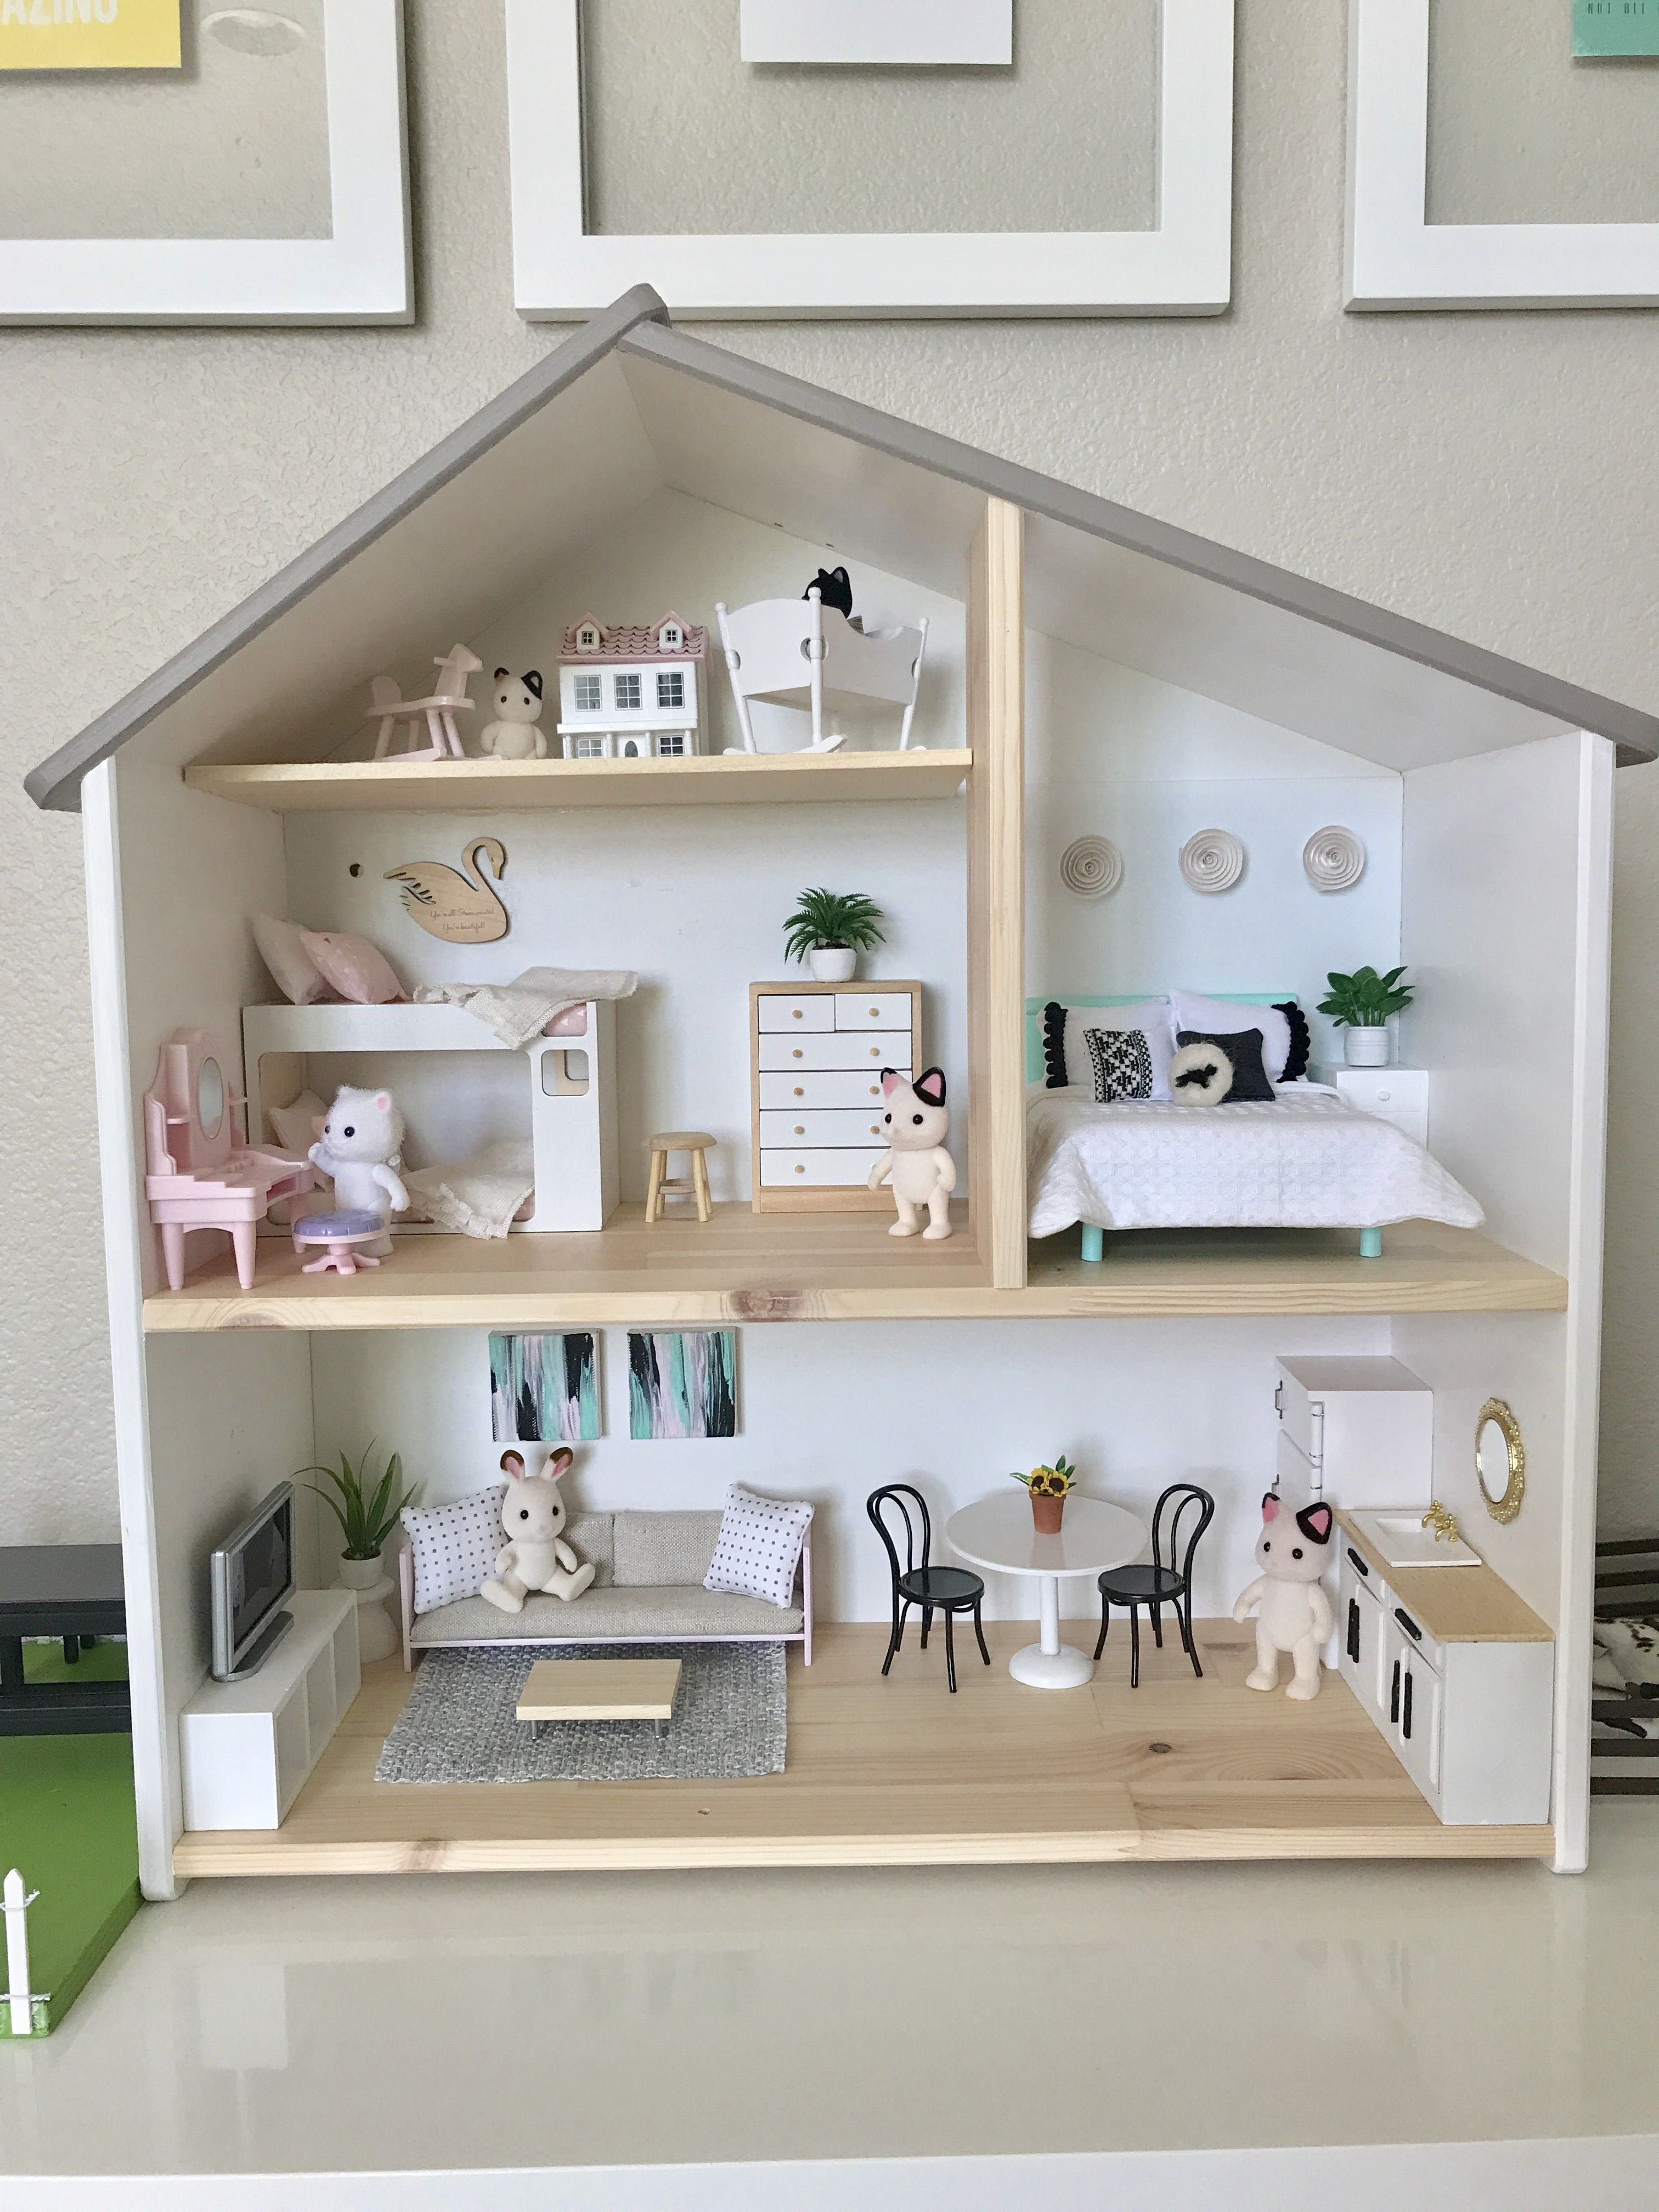 Elenas IKEA Flisat dollhouse is fully furnished ikeadollhouse